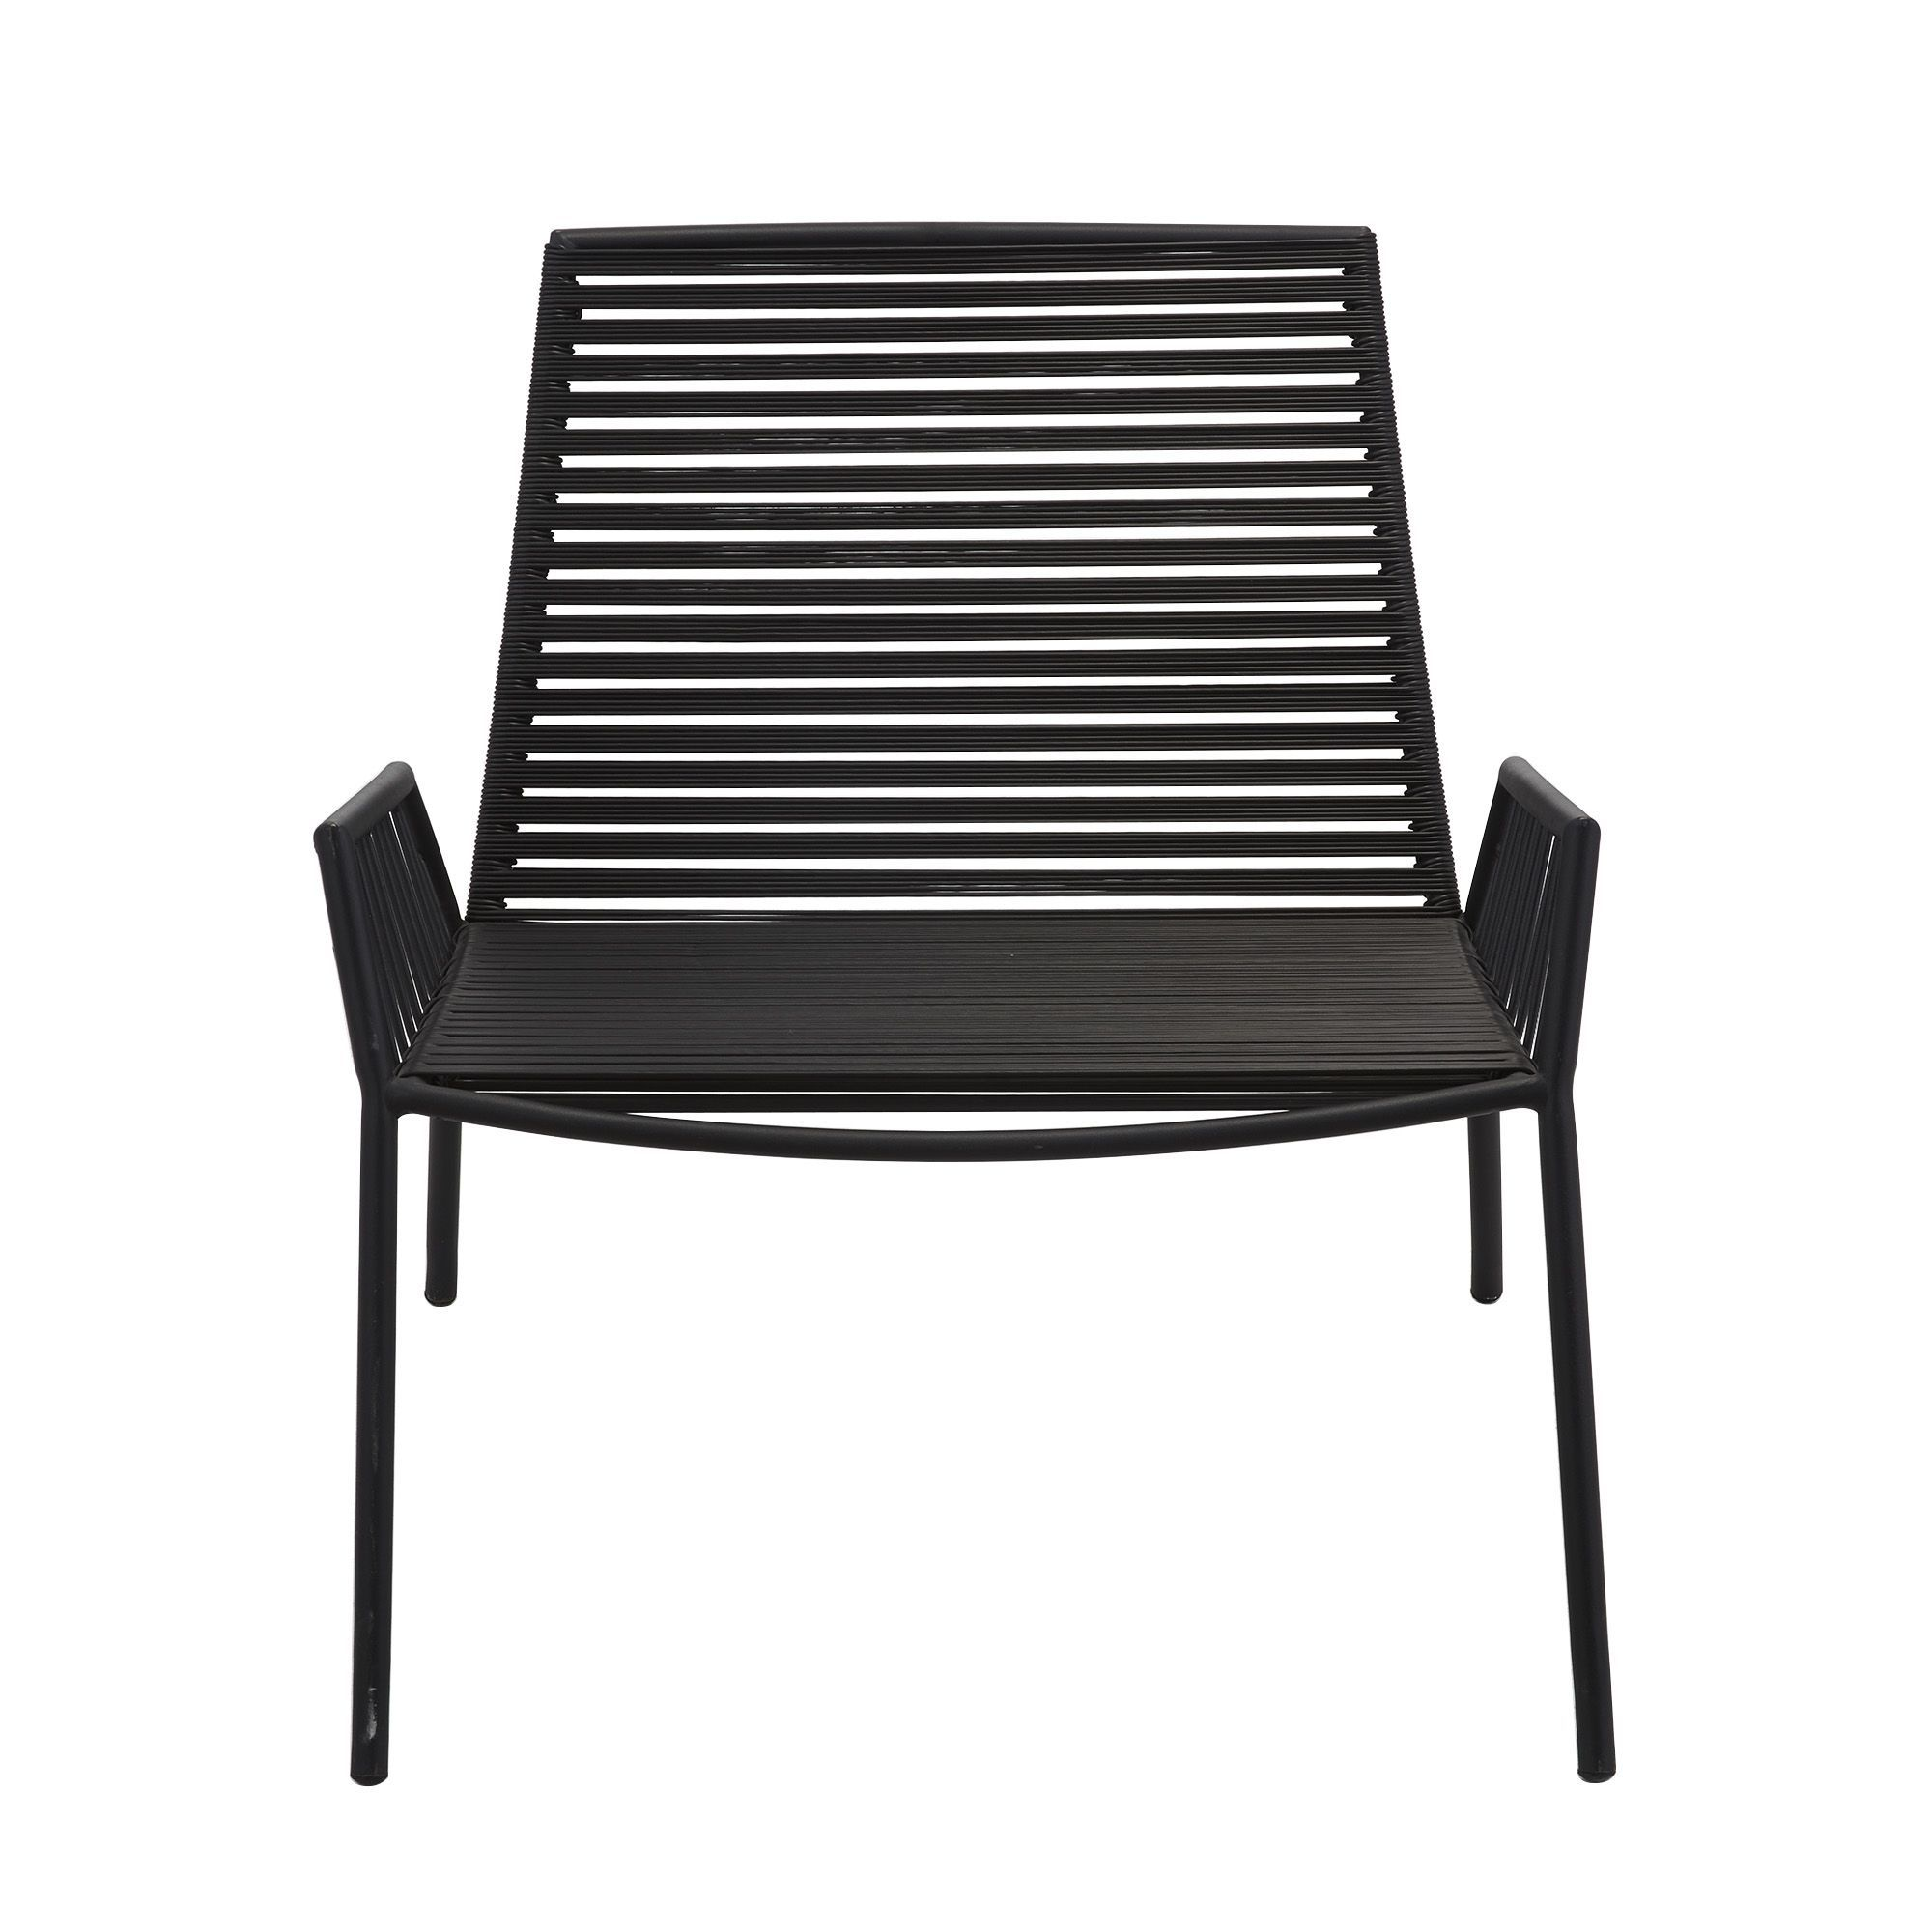 uac alinea fauteuil de jardin empilable noir romain fauteuils de jardin salon with fauteuil huevo. Black Bedroom Furniture Sets. Home Design Ideas